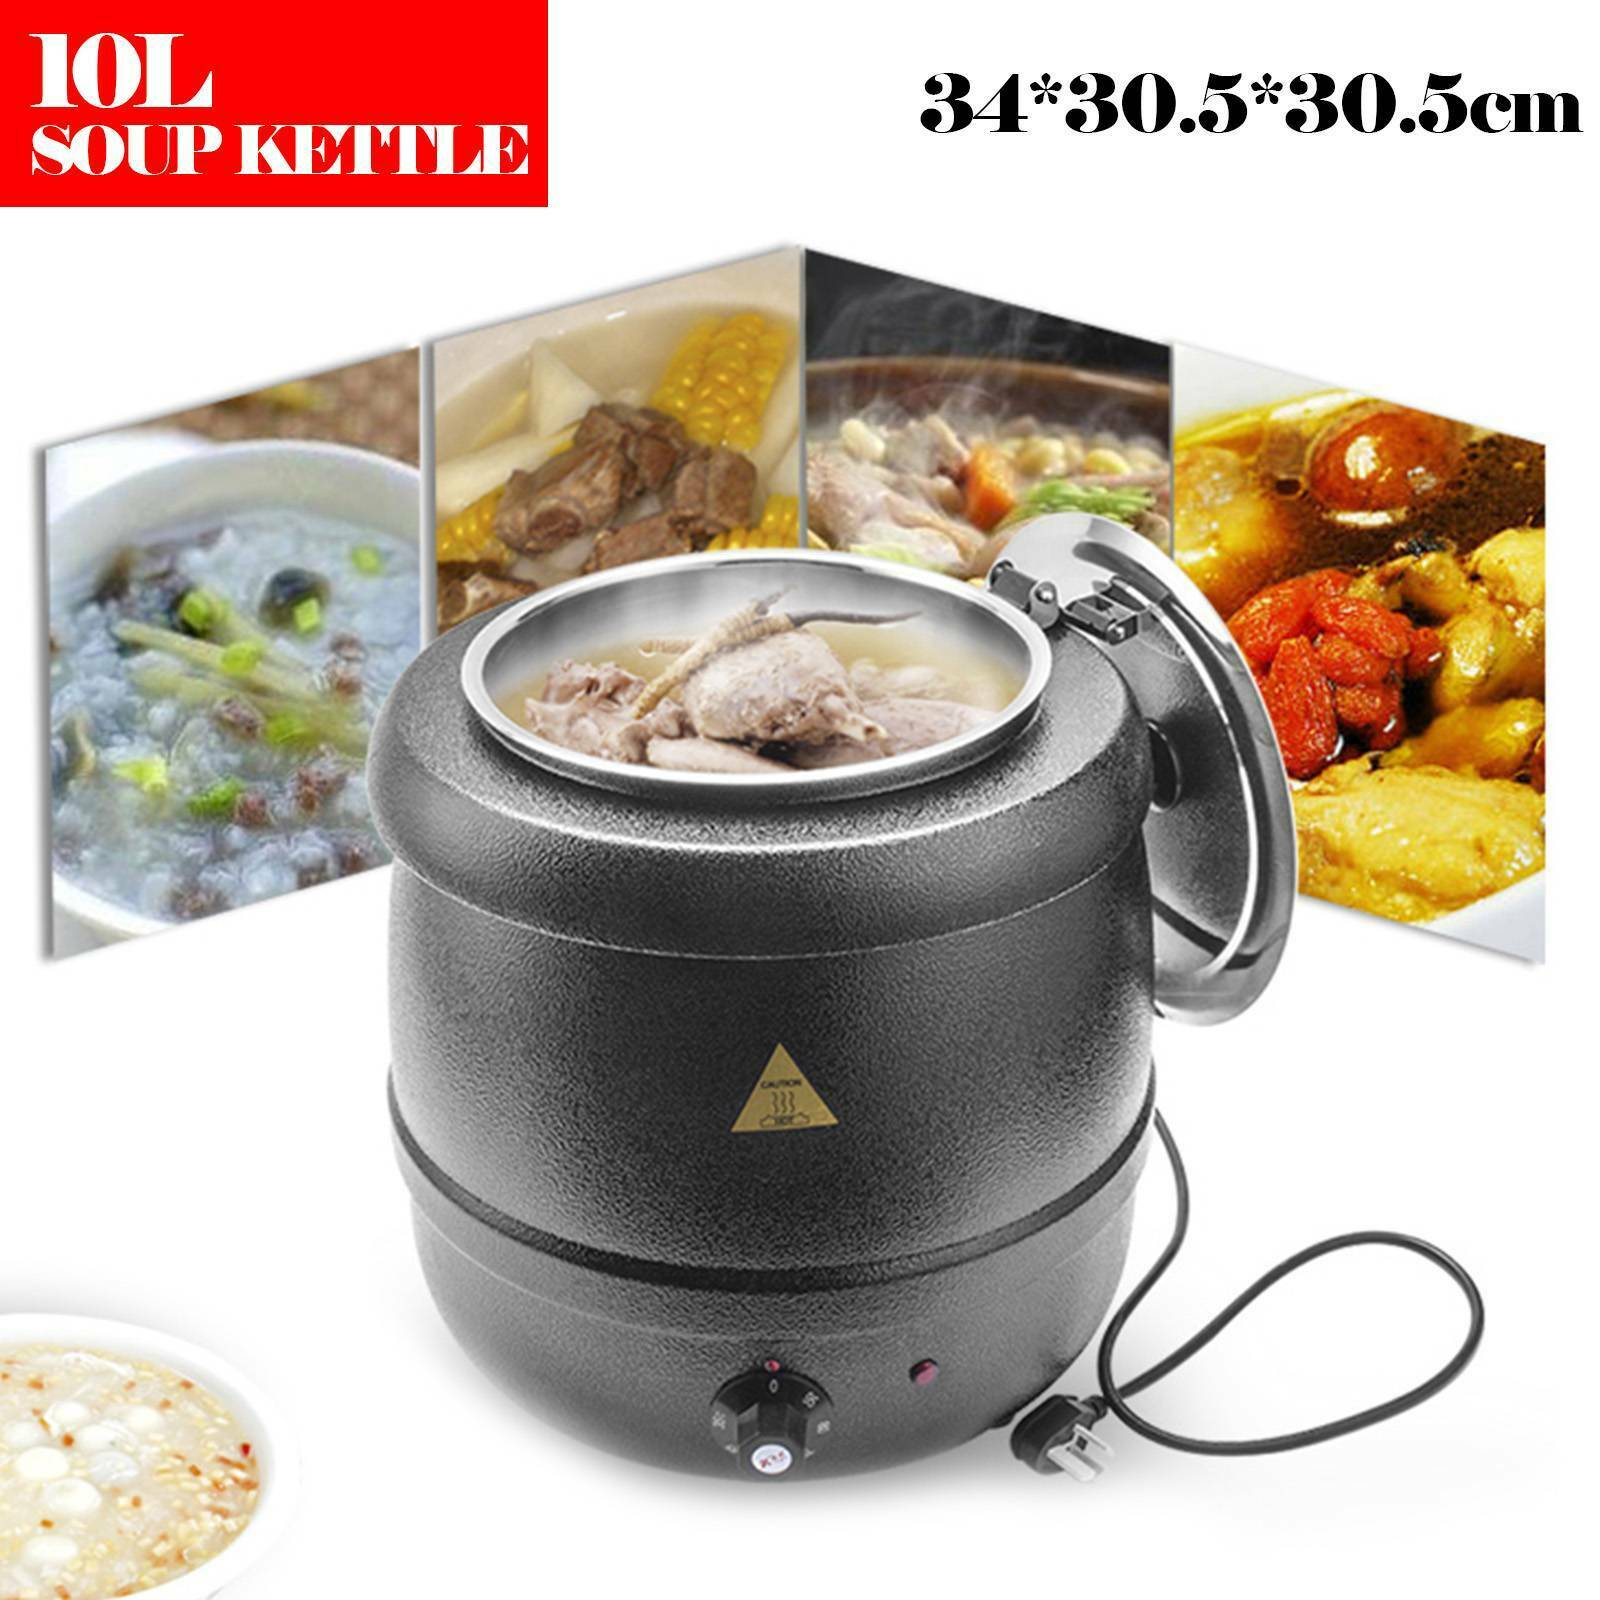 Zodiac Sunnex Electric Soup Kettle 10